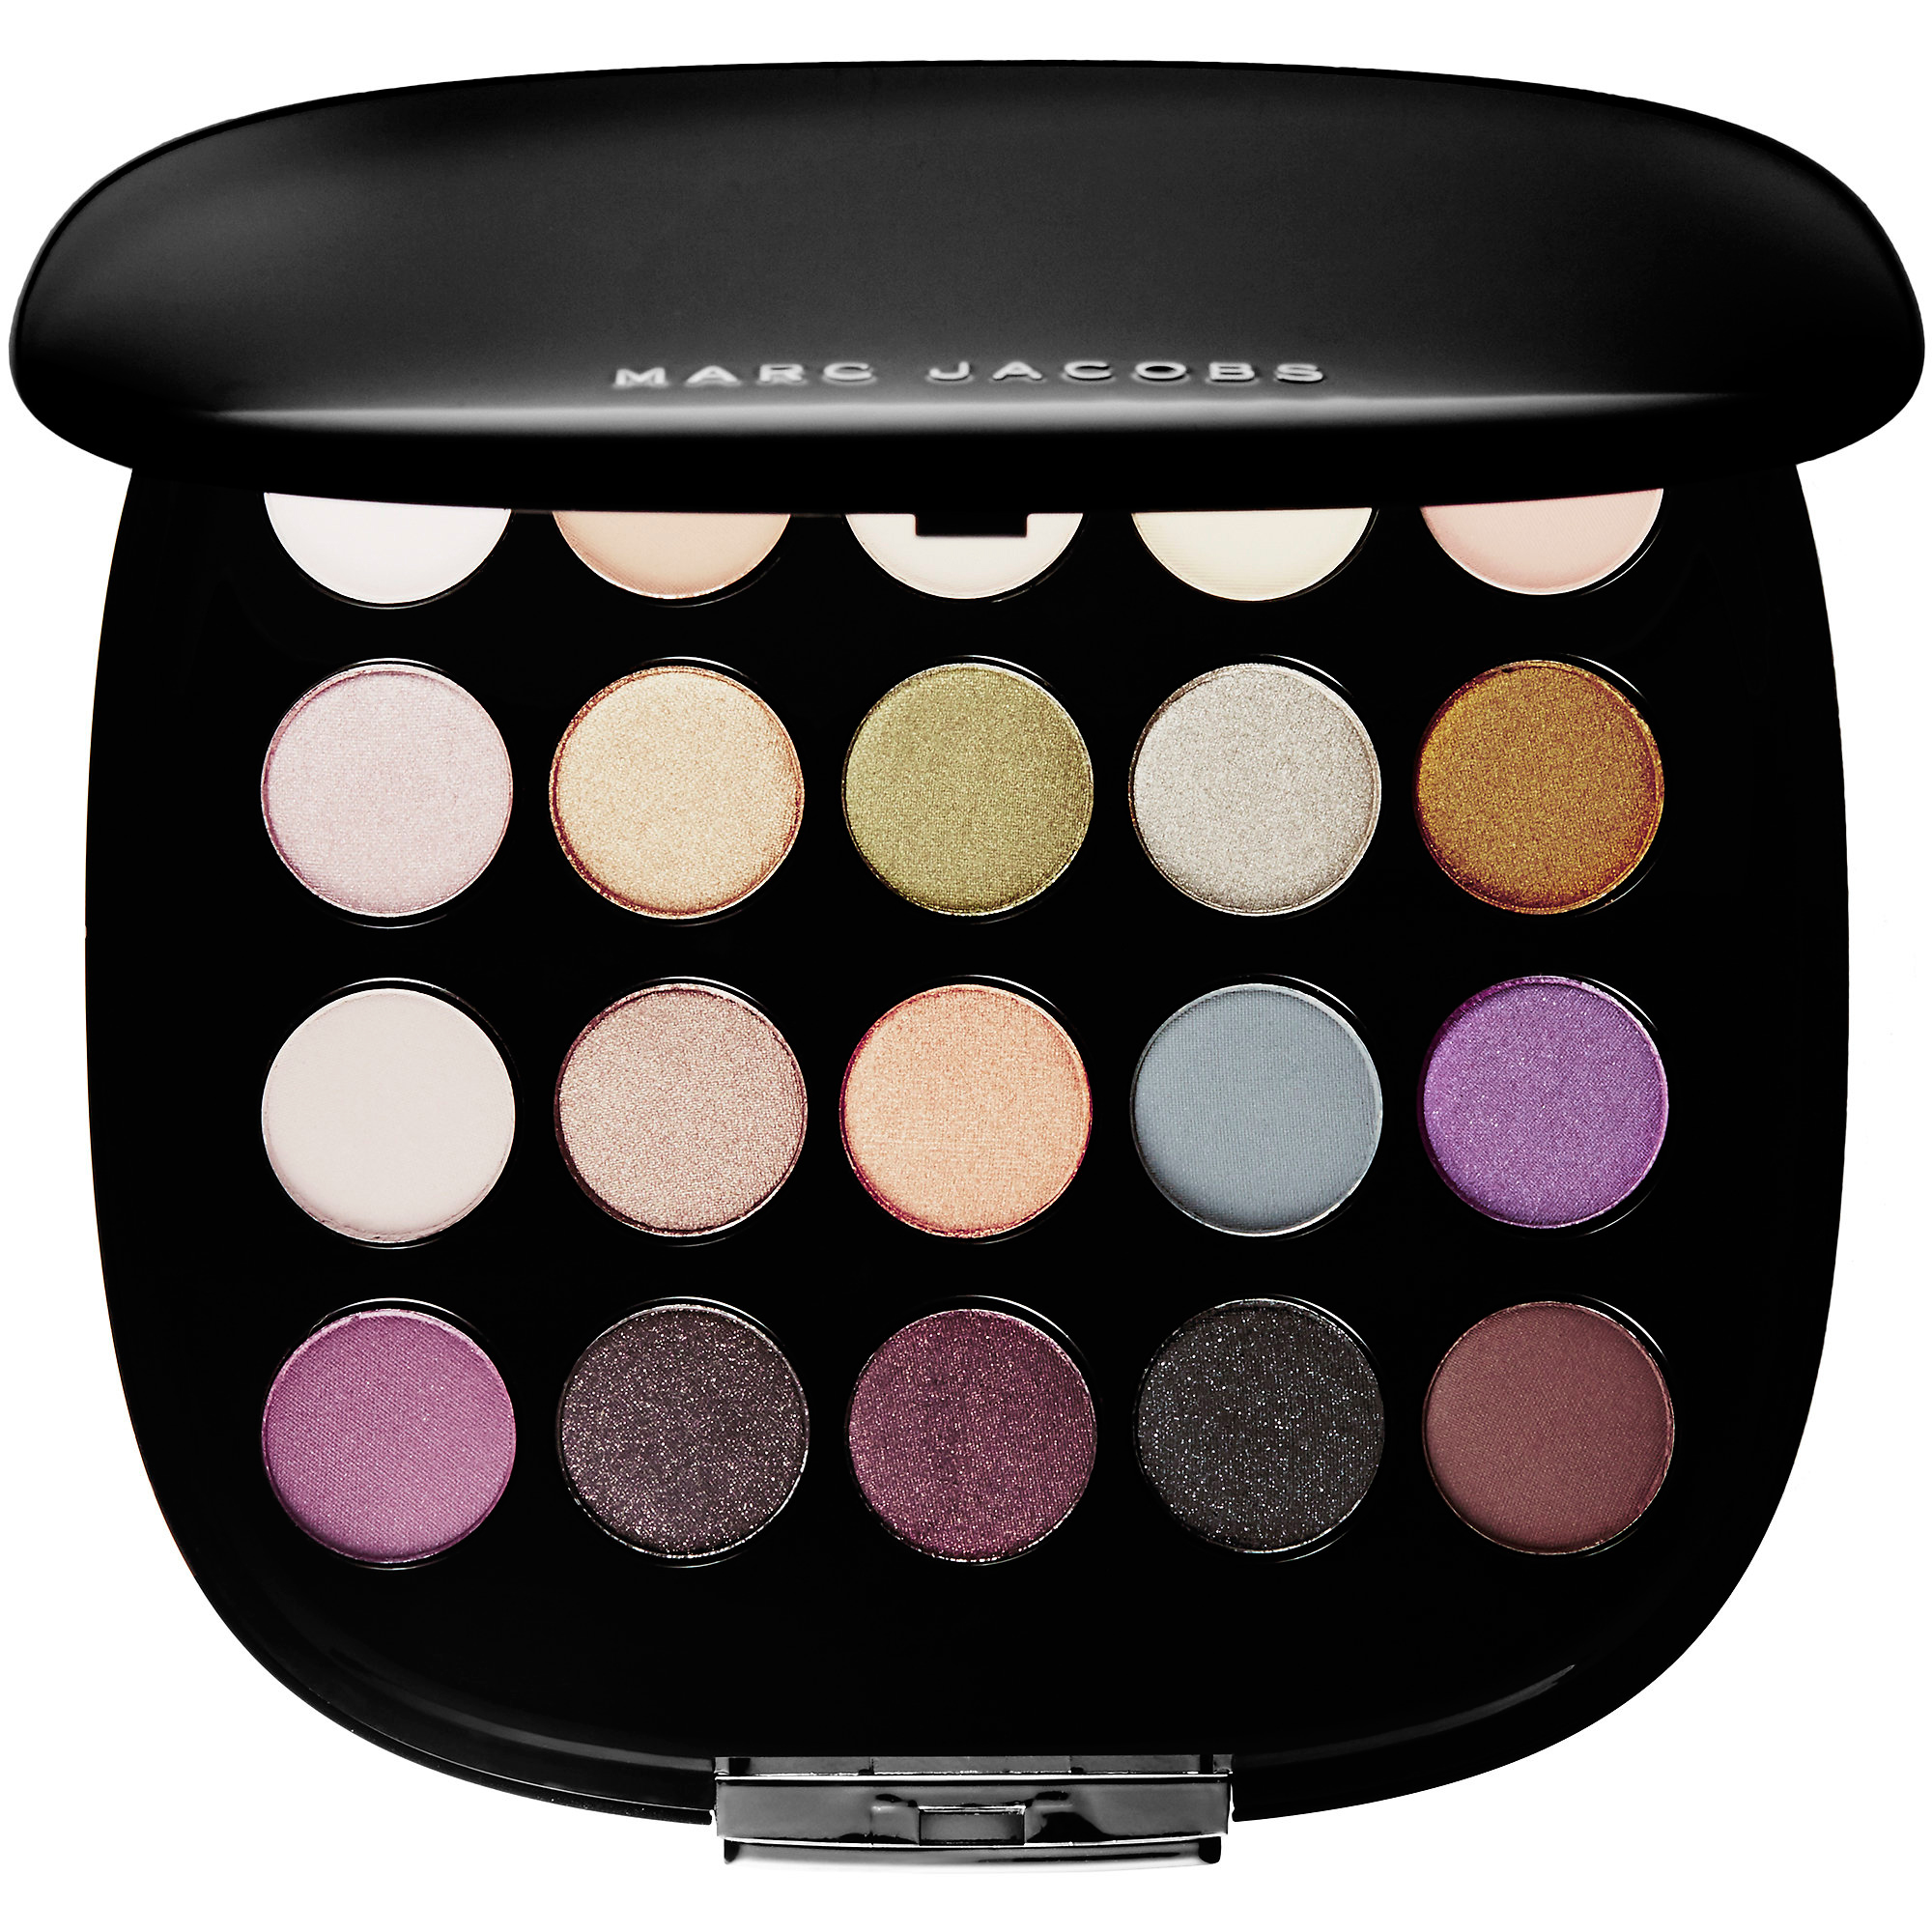 I'm Obsessed - Marc Jacobs eyeshadow palette embed